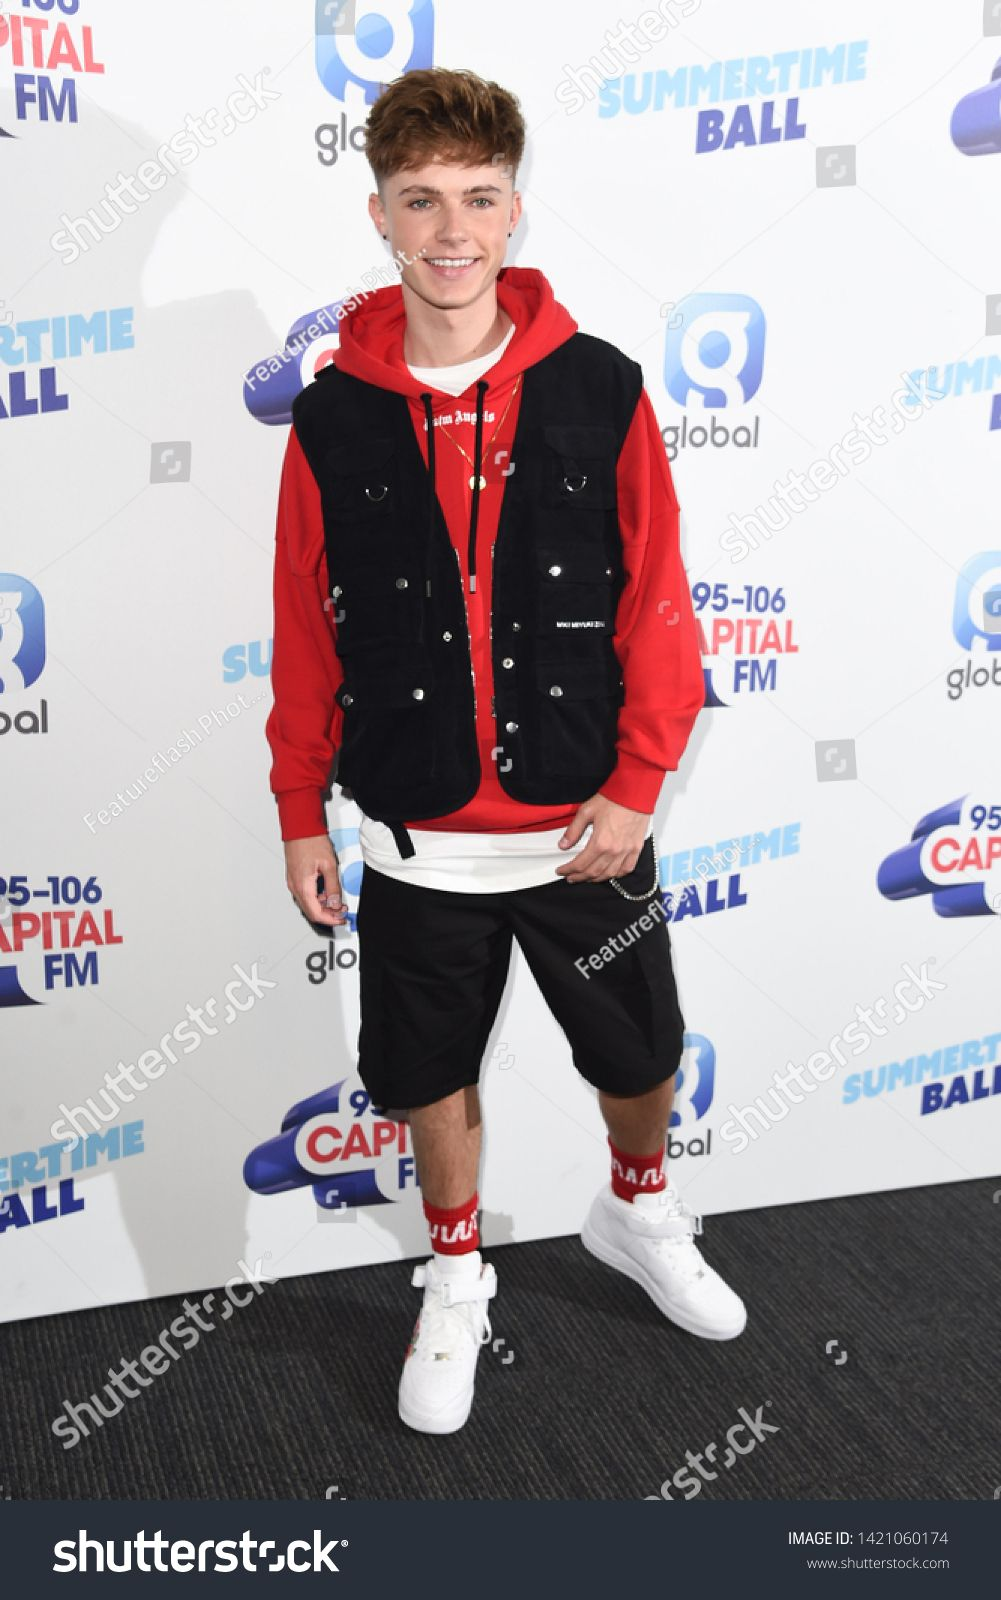 London Uk June 08 2019 Hrvy Poses On The Media Line Before Performing At The Summertime Ball 2019 At Wembley Arena London Rpict Photo Editing Photo London